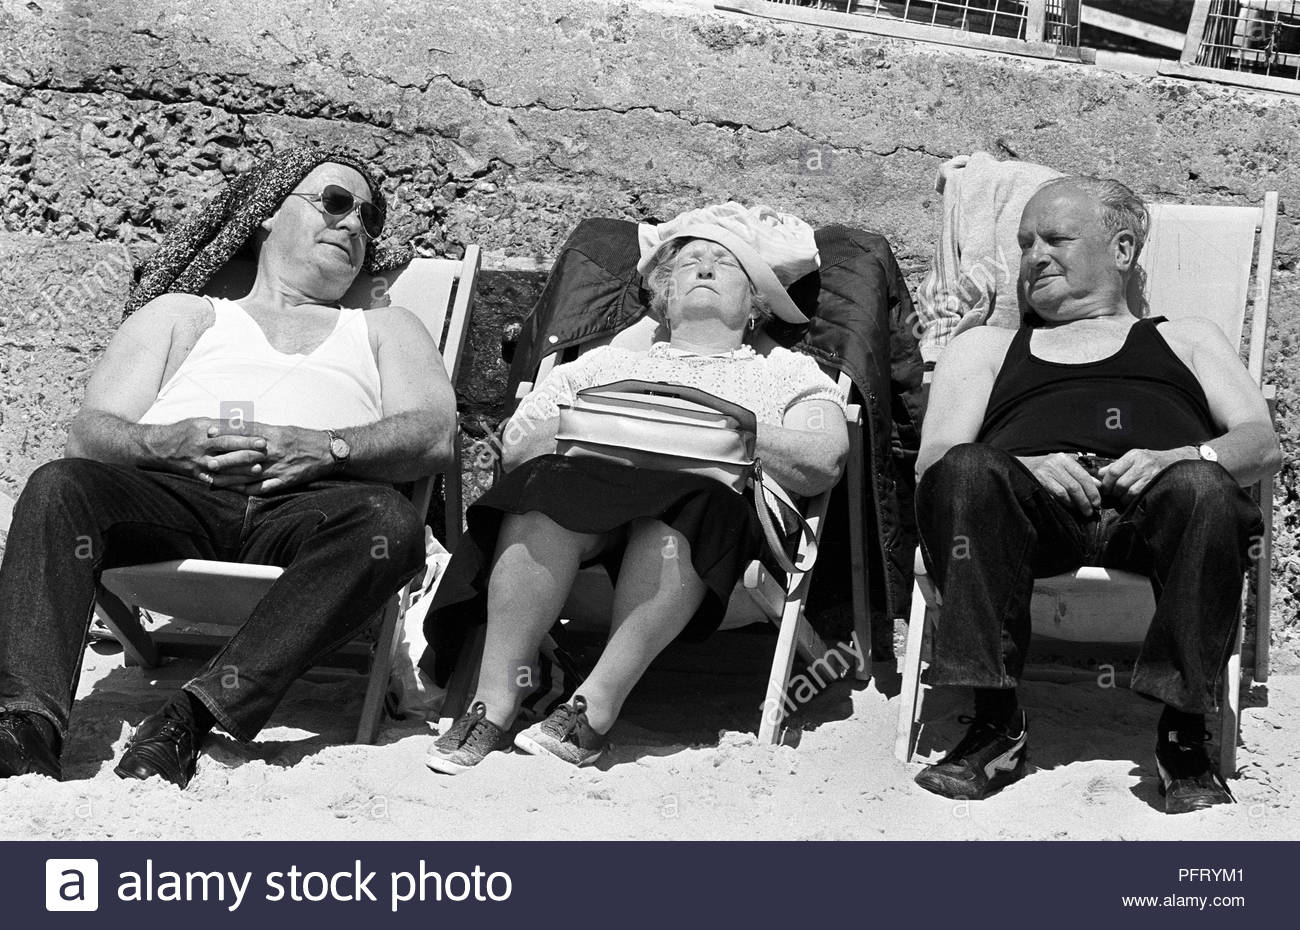 Two elderly men, sat in deckchairs either side of an elderly lady, watch her and smile as she snoozes in the afternoon sunshine on the beach at Tenby, Wales. Vintage black and white photograph first published The Sunday Times - Stock Image